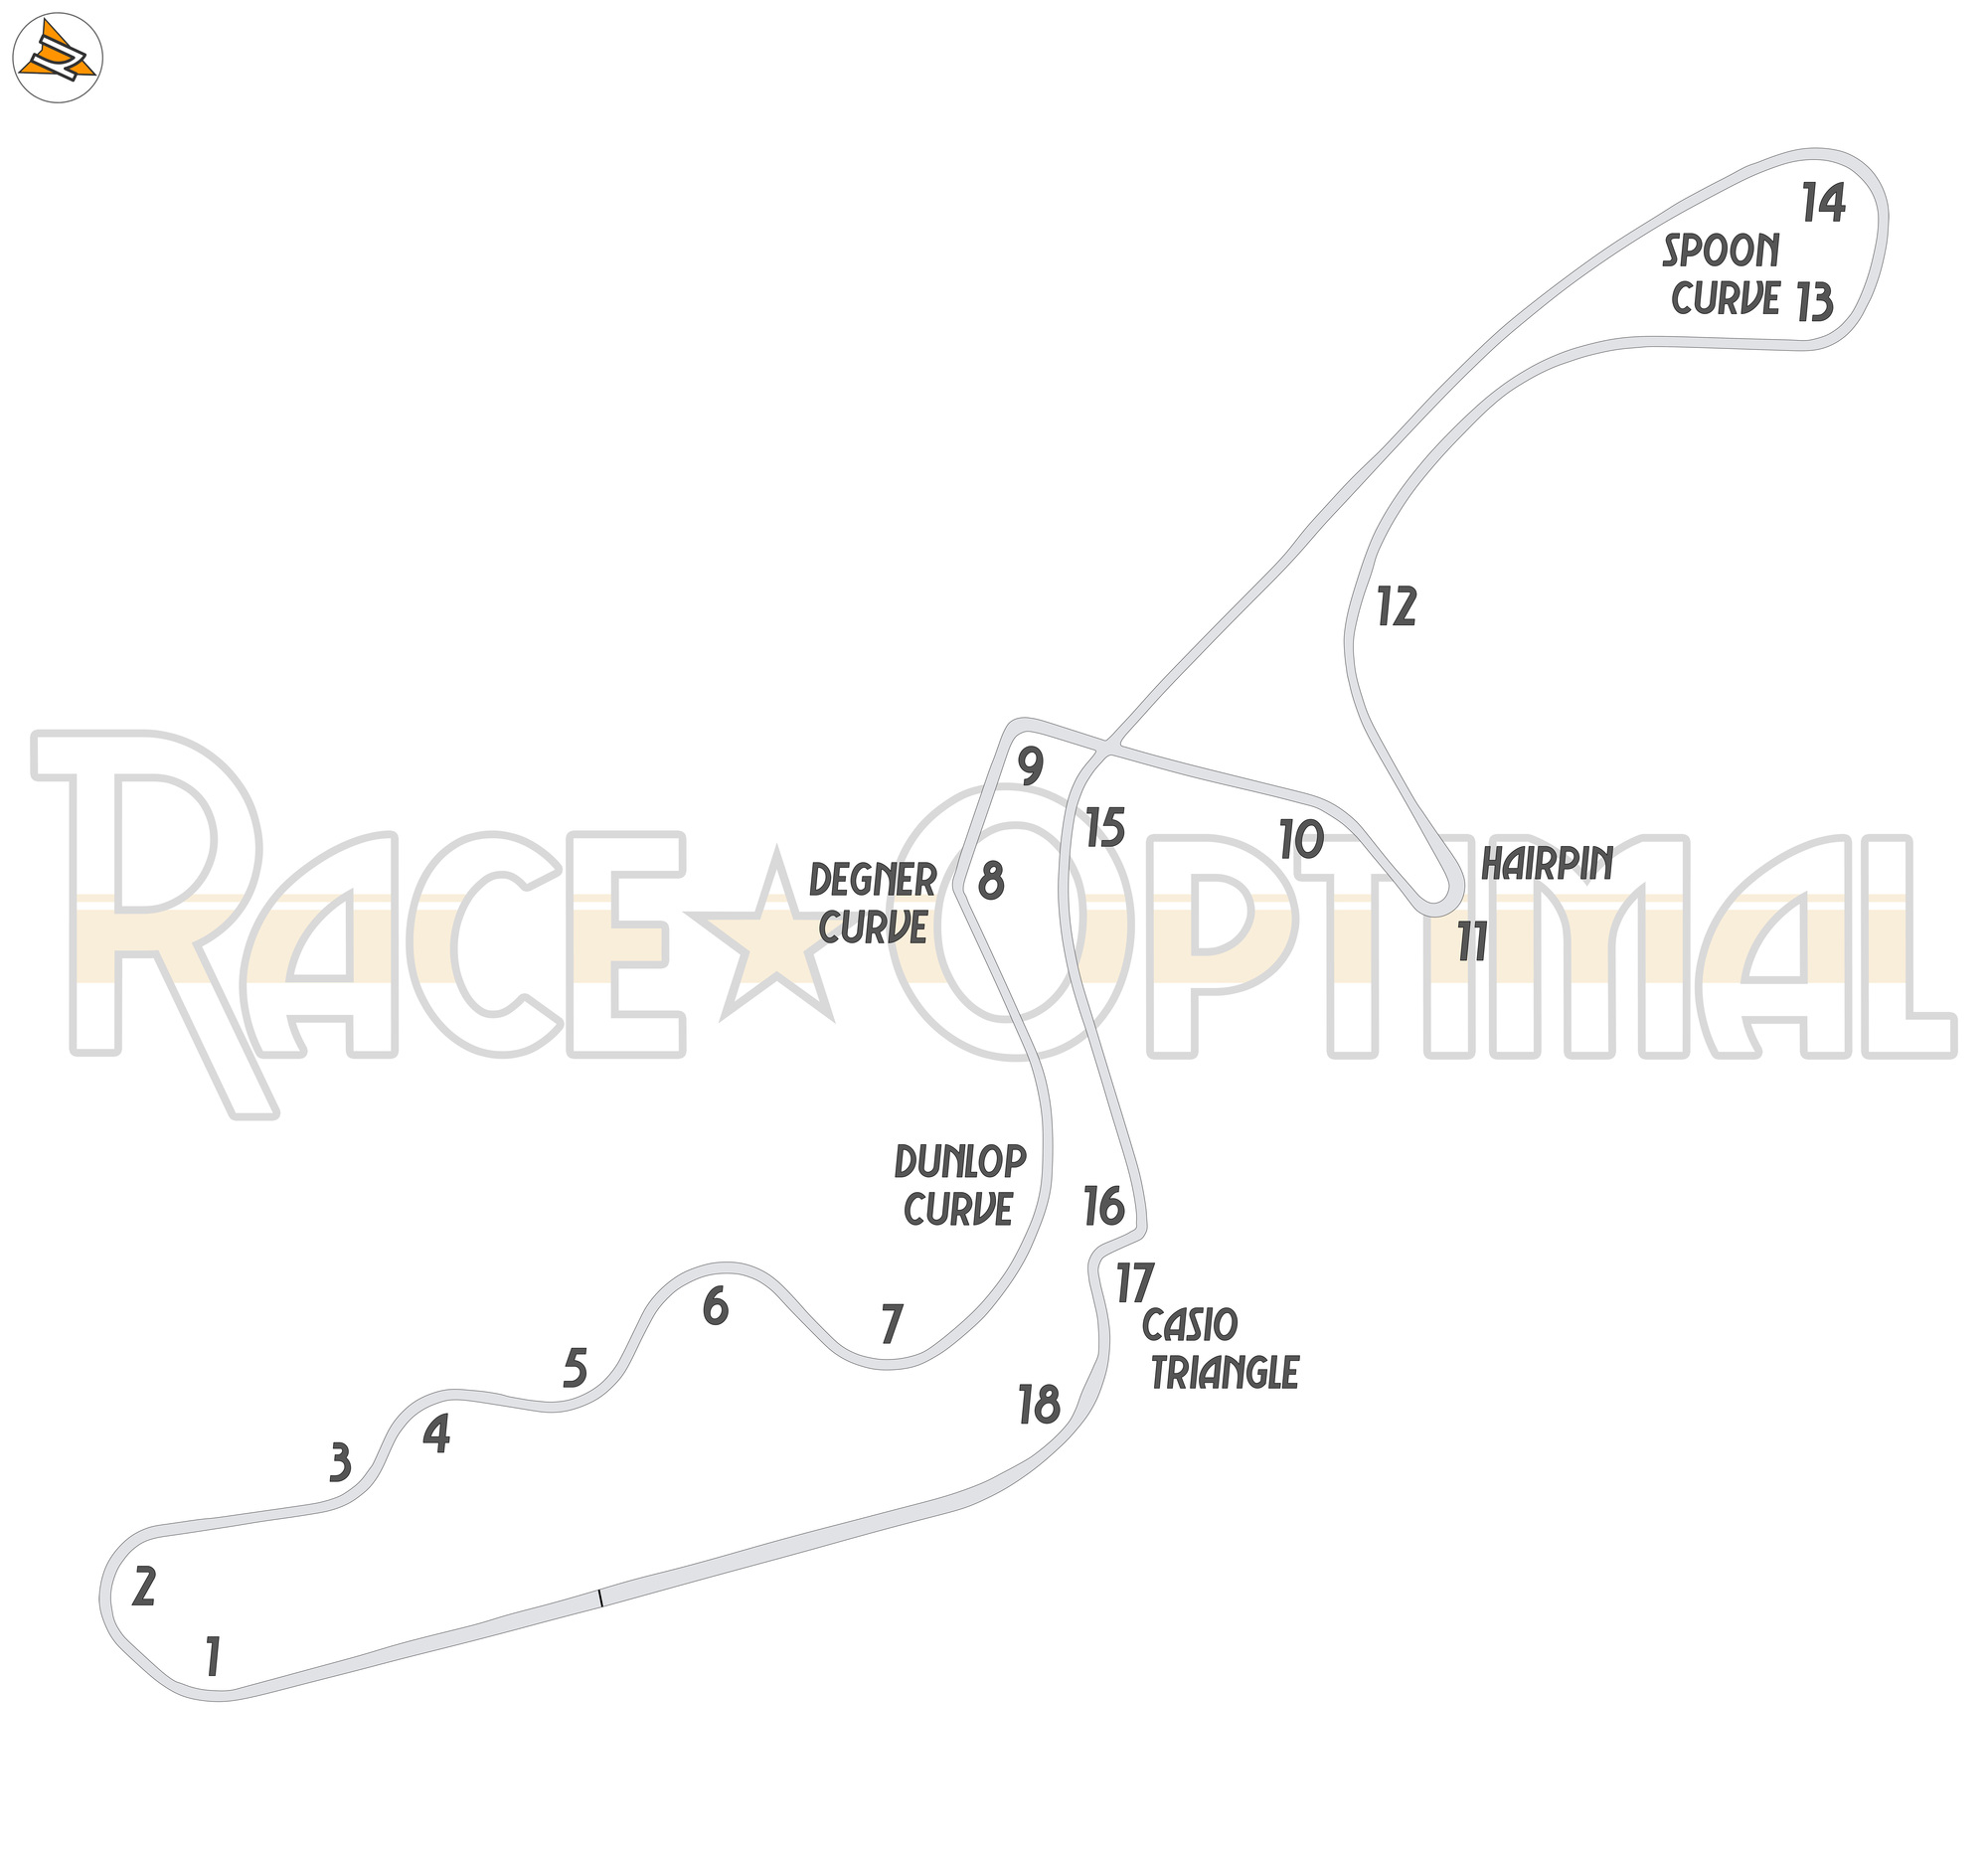 racing line map at suzuka circuit